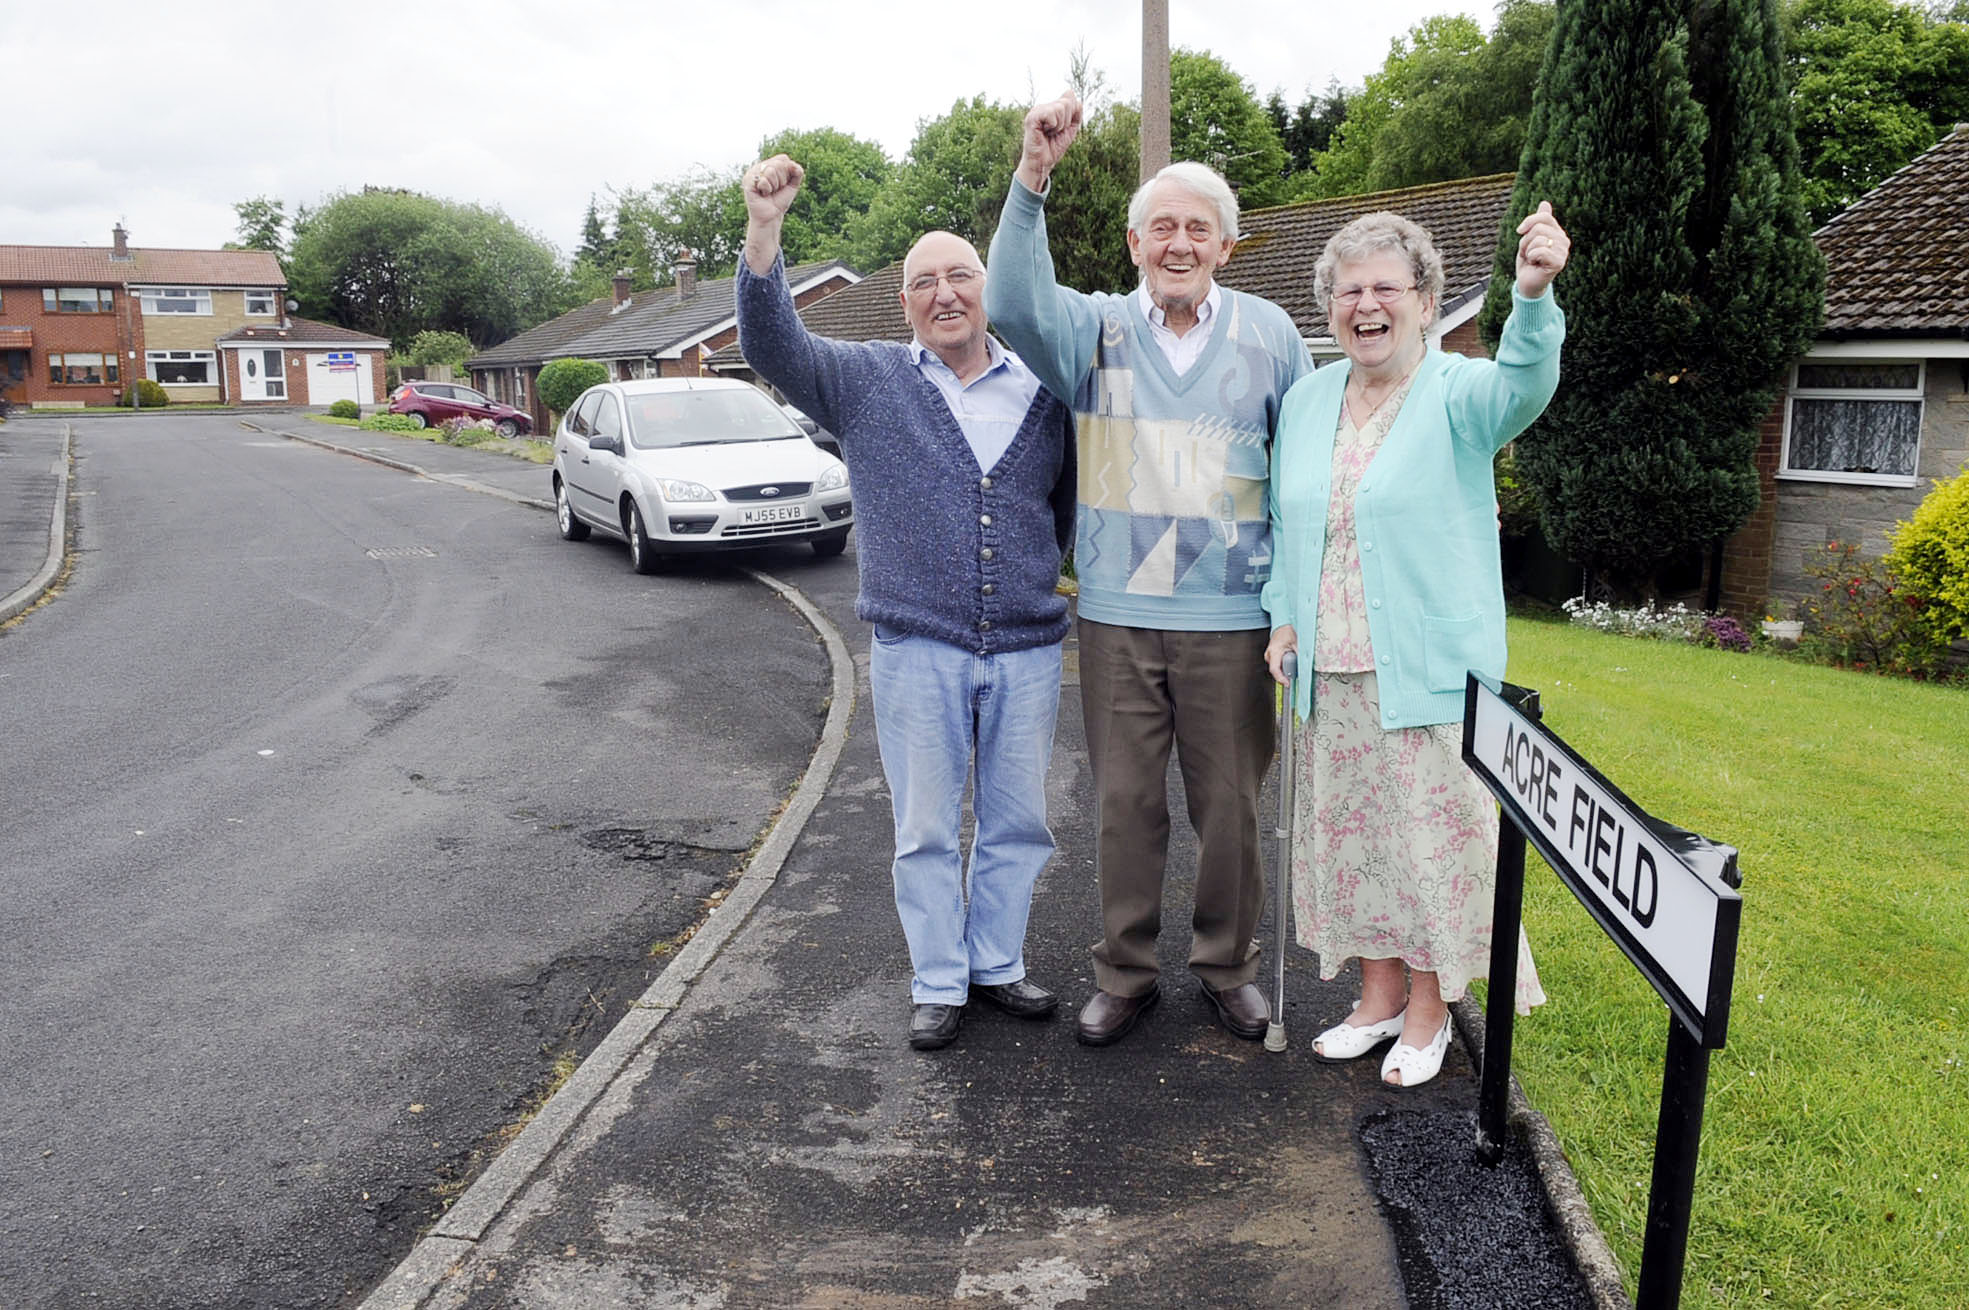 Missing Harwood street sign FINALLY returned